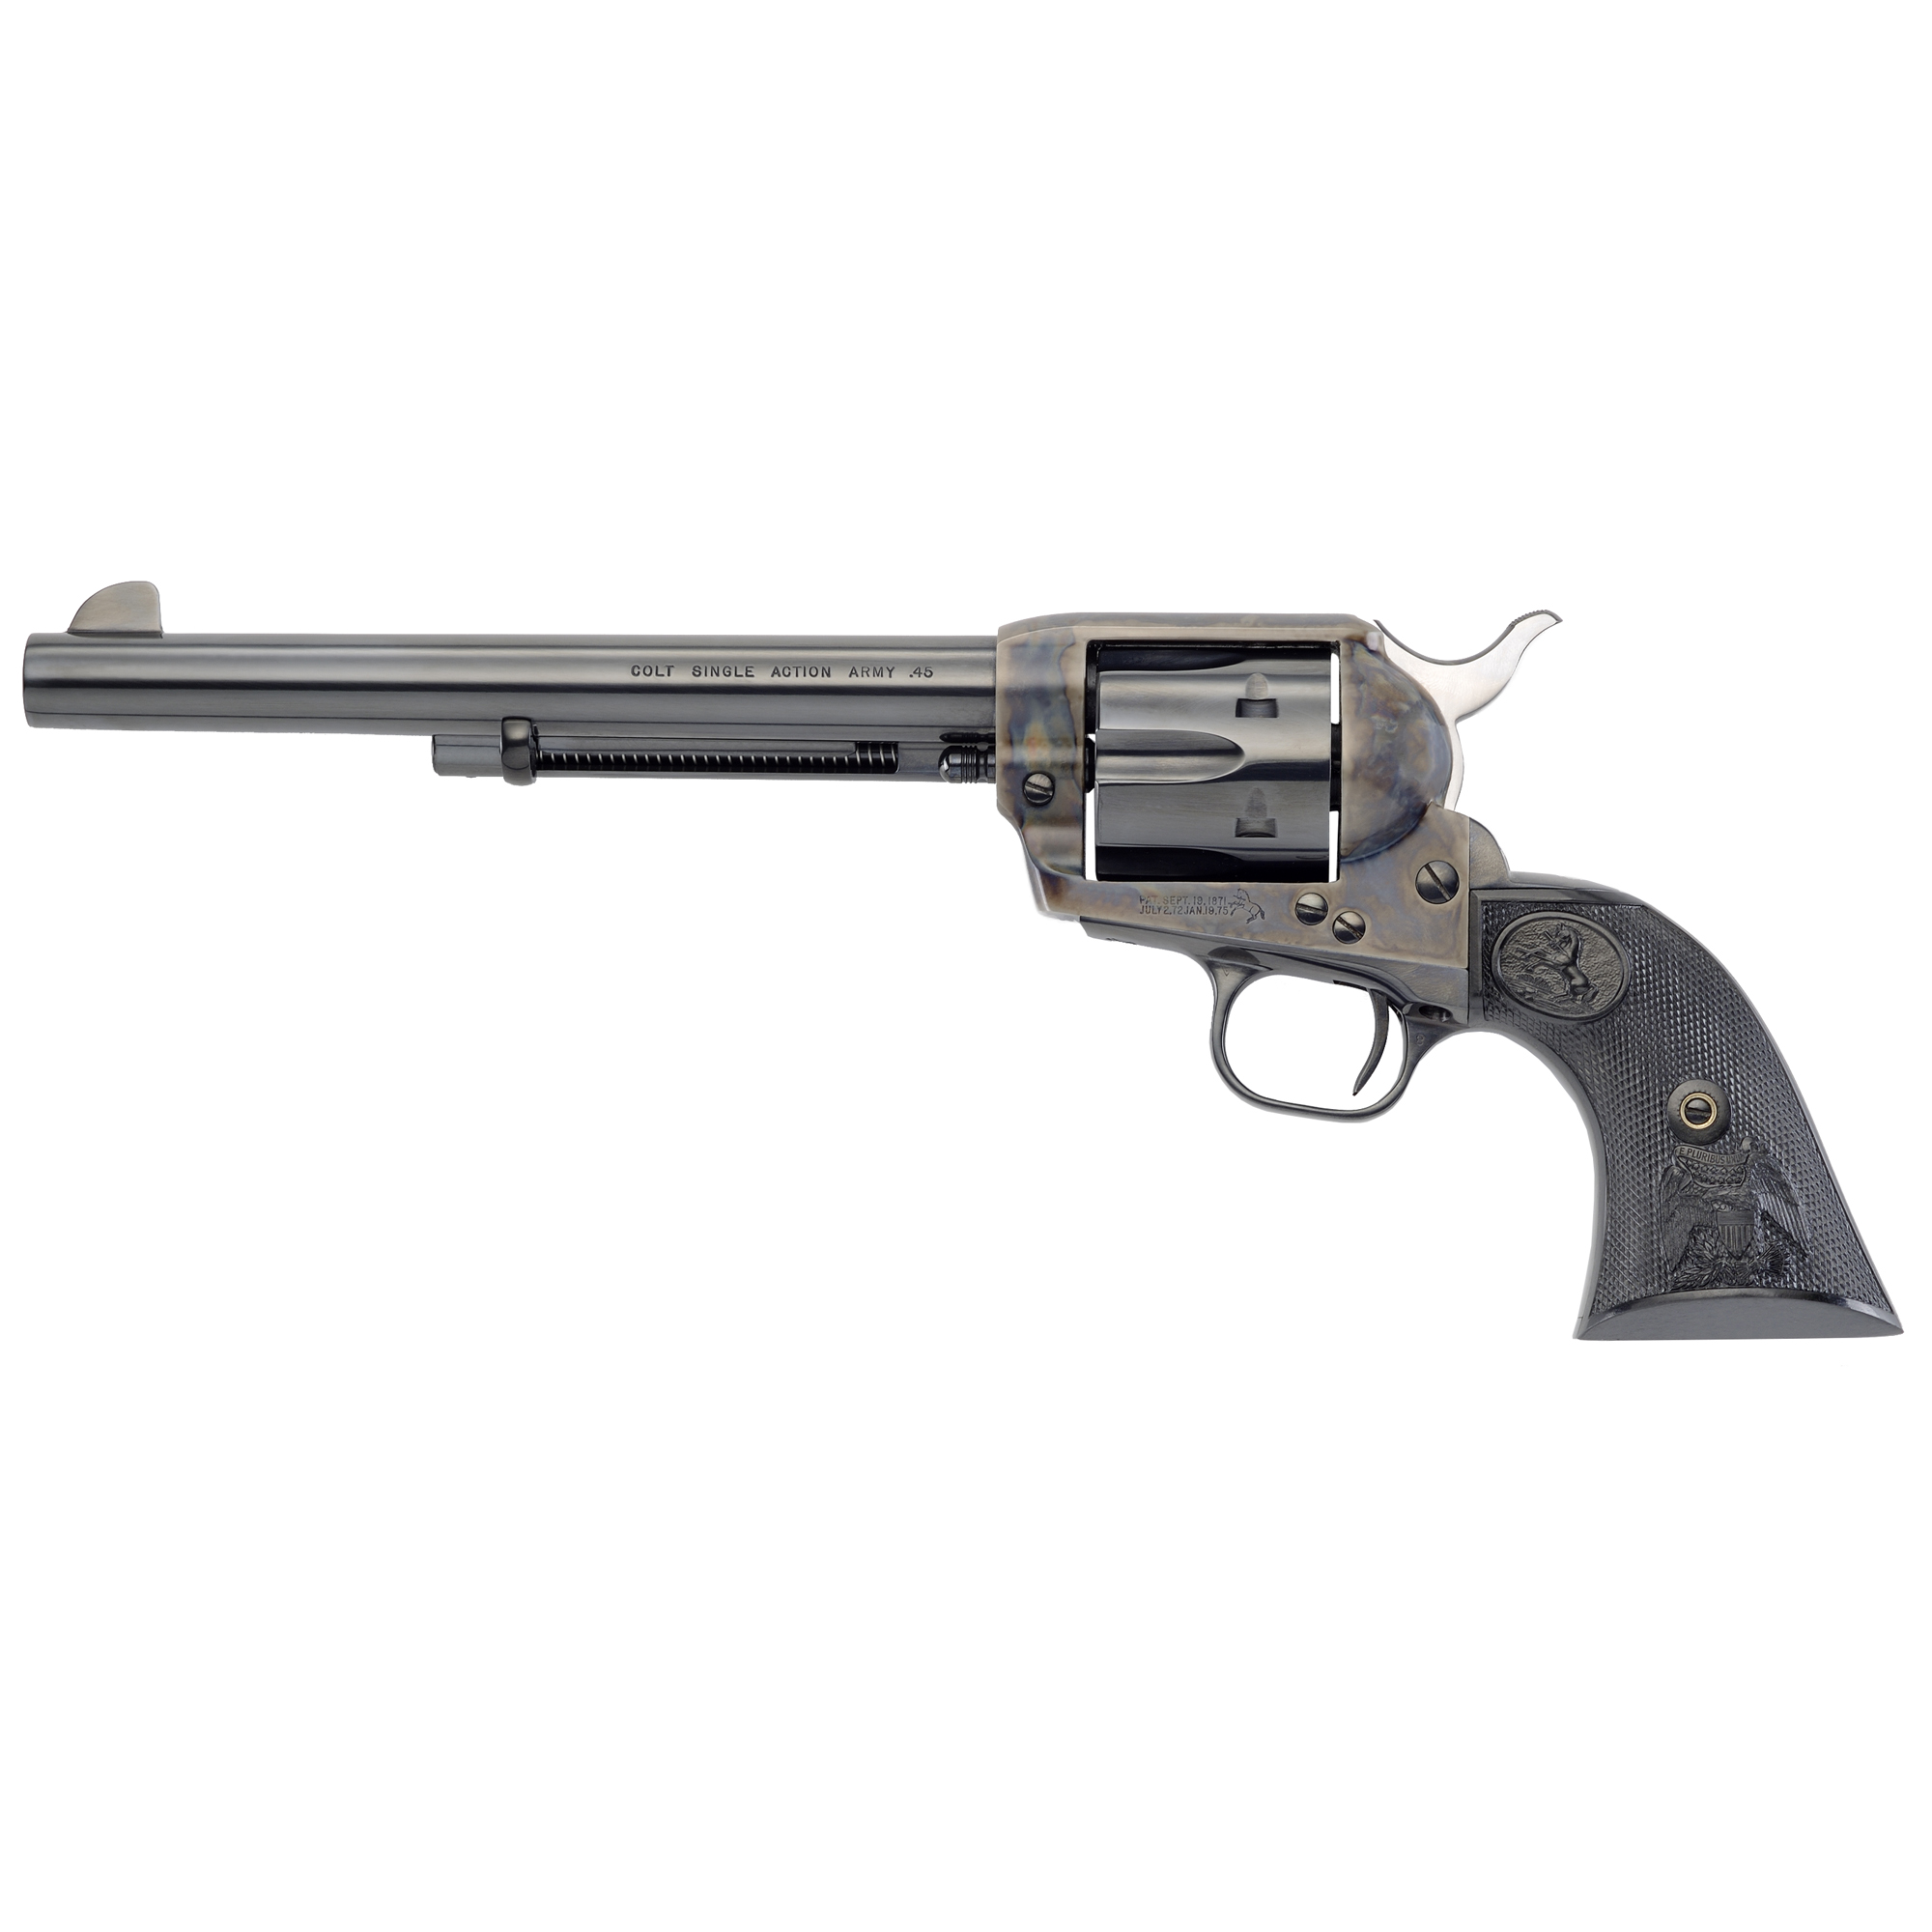 "No Colt revolver has earned greater fame than the single action army - The Peacemaker. In design and performance"" in line and form"" no more sculptural and practical Colt has ever been created. Movies serve as constant reminders of the role this equalizer played in winning the West."